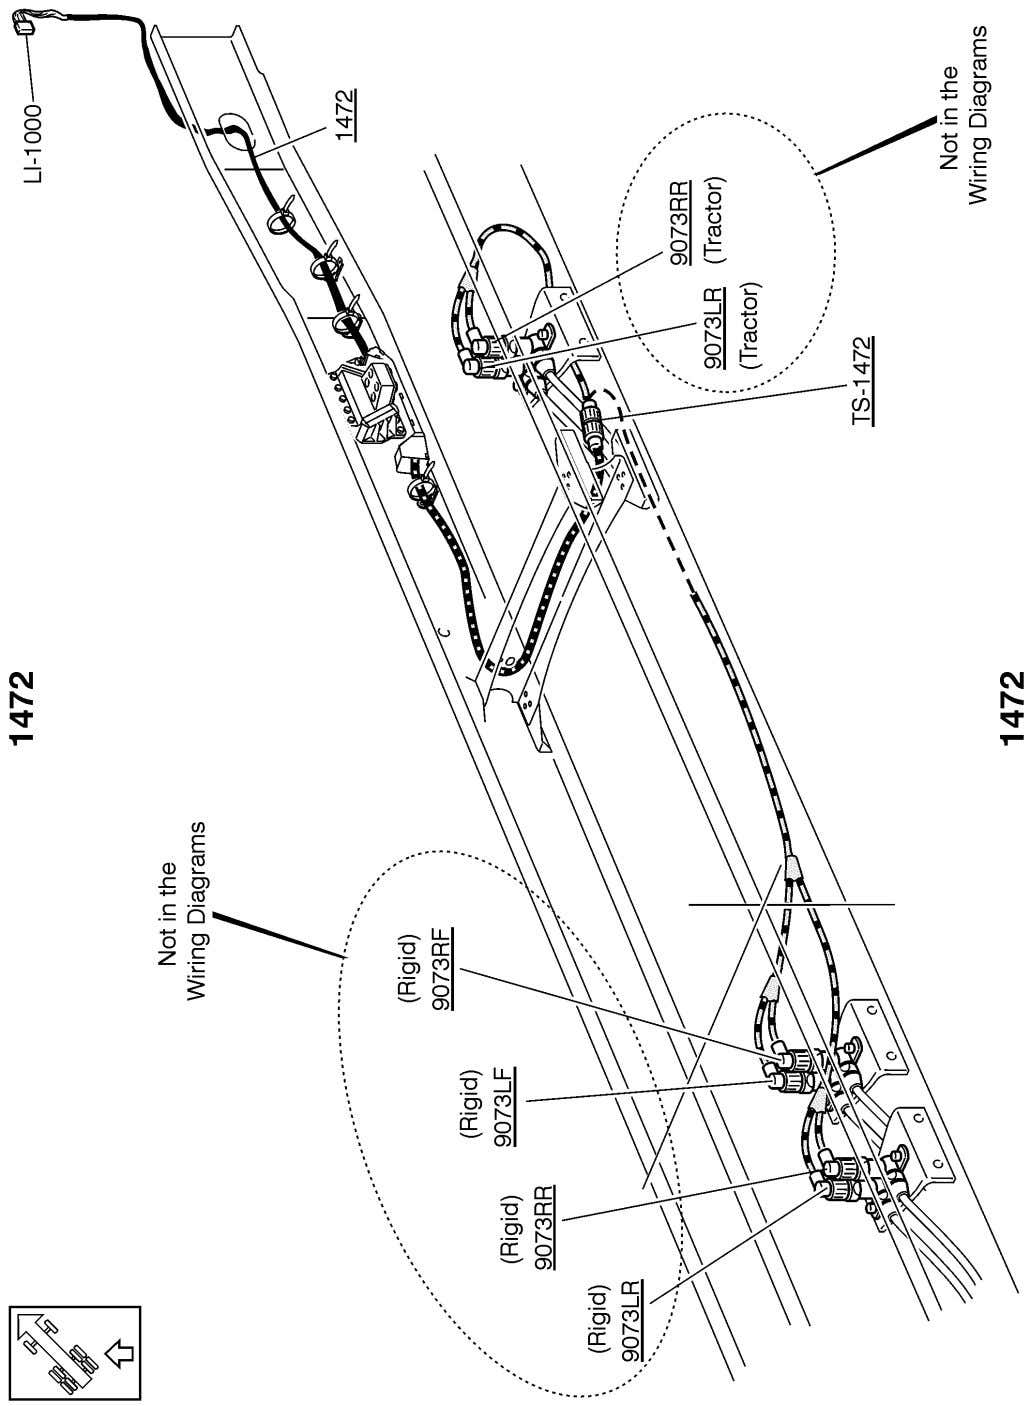 T3016441 Wiring diagram Page 207 (298)